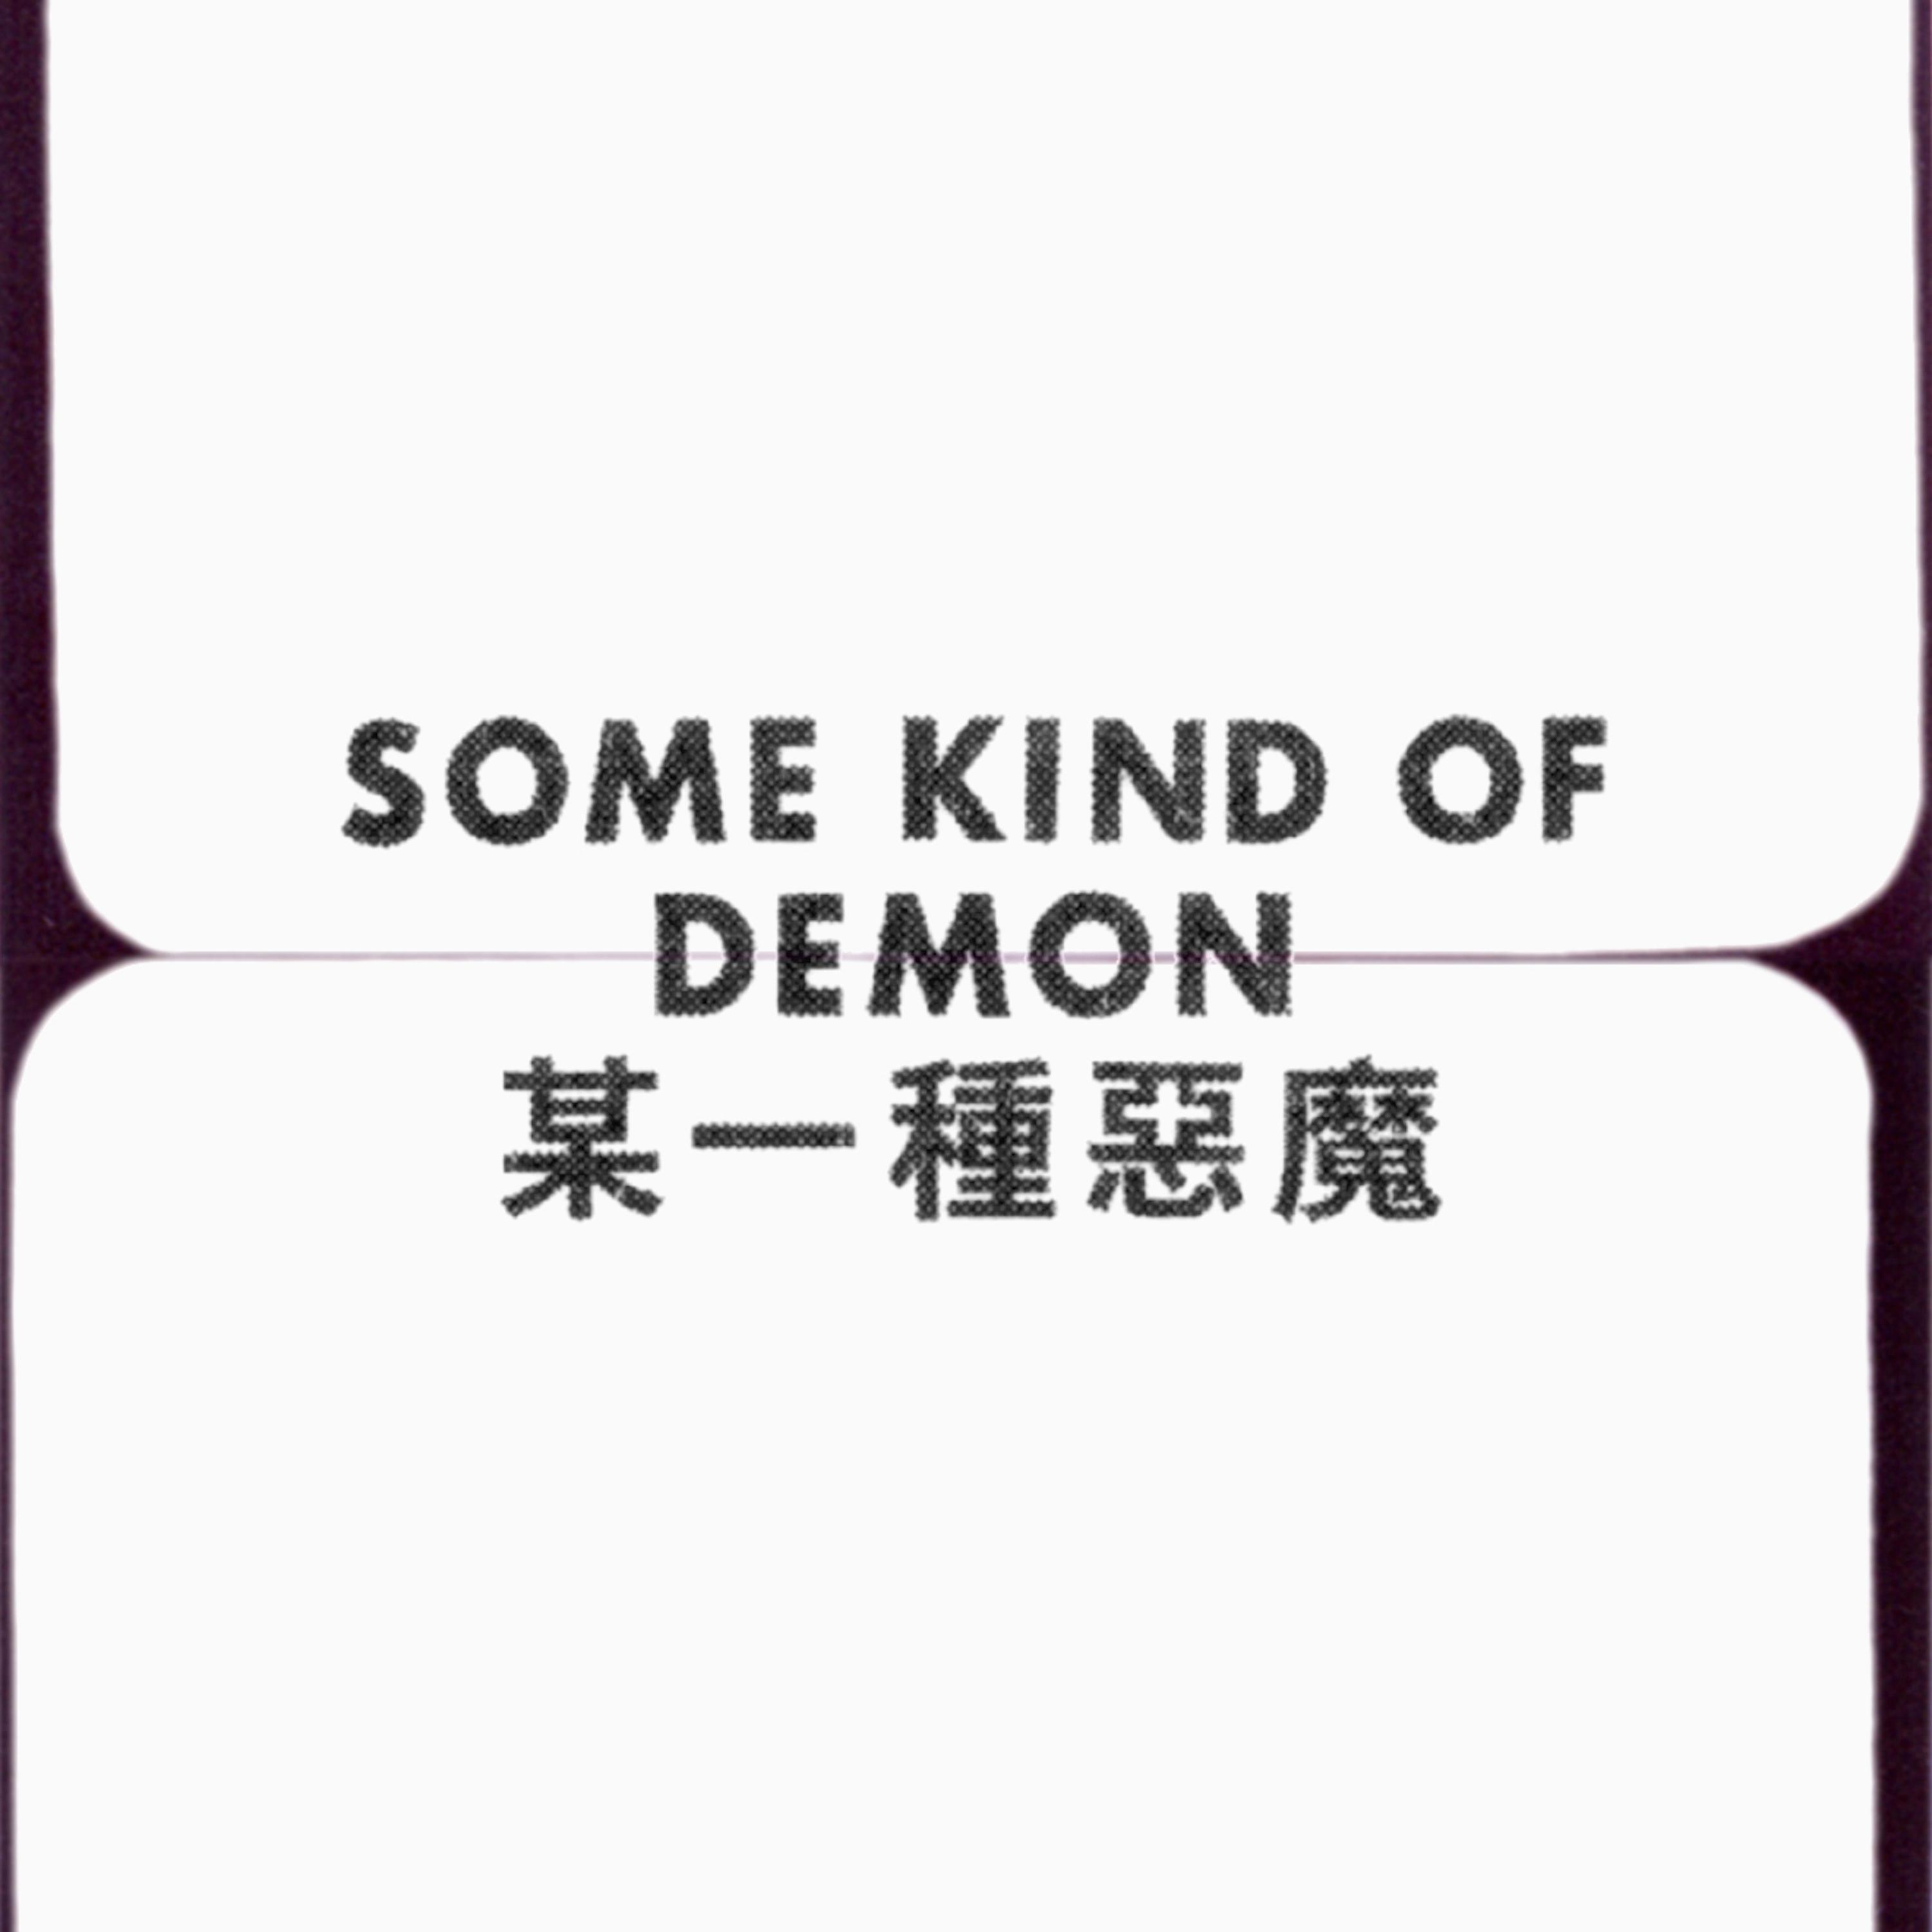 Some Kind of Demon 某一种恶魔